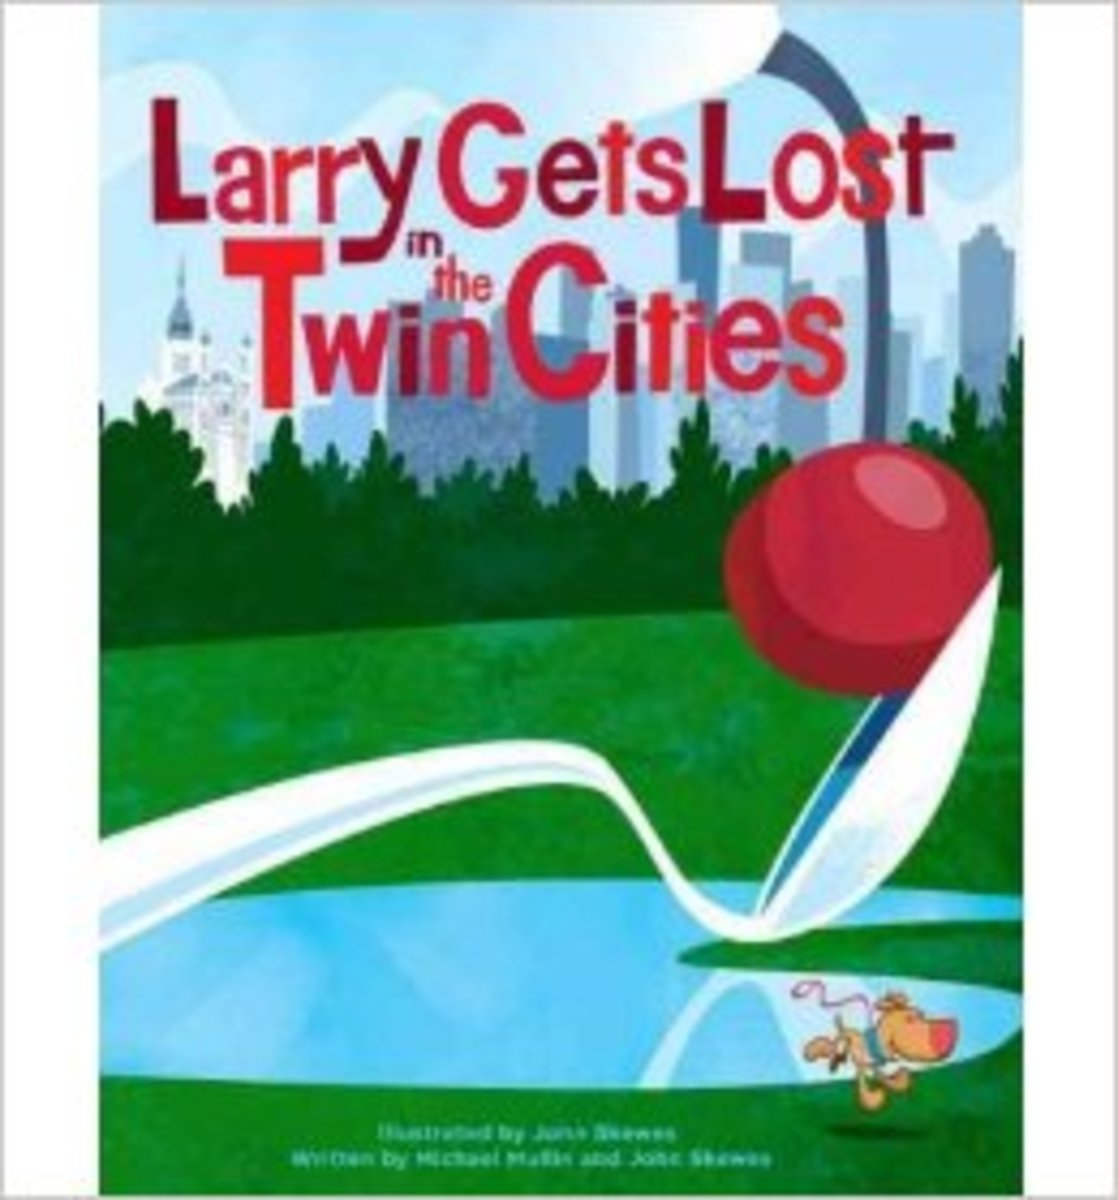 Larry Gets Lost in the Twin Cities by John Skewes